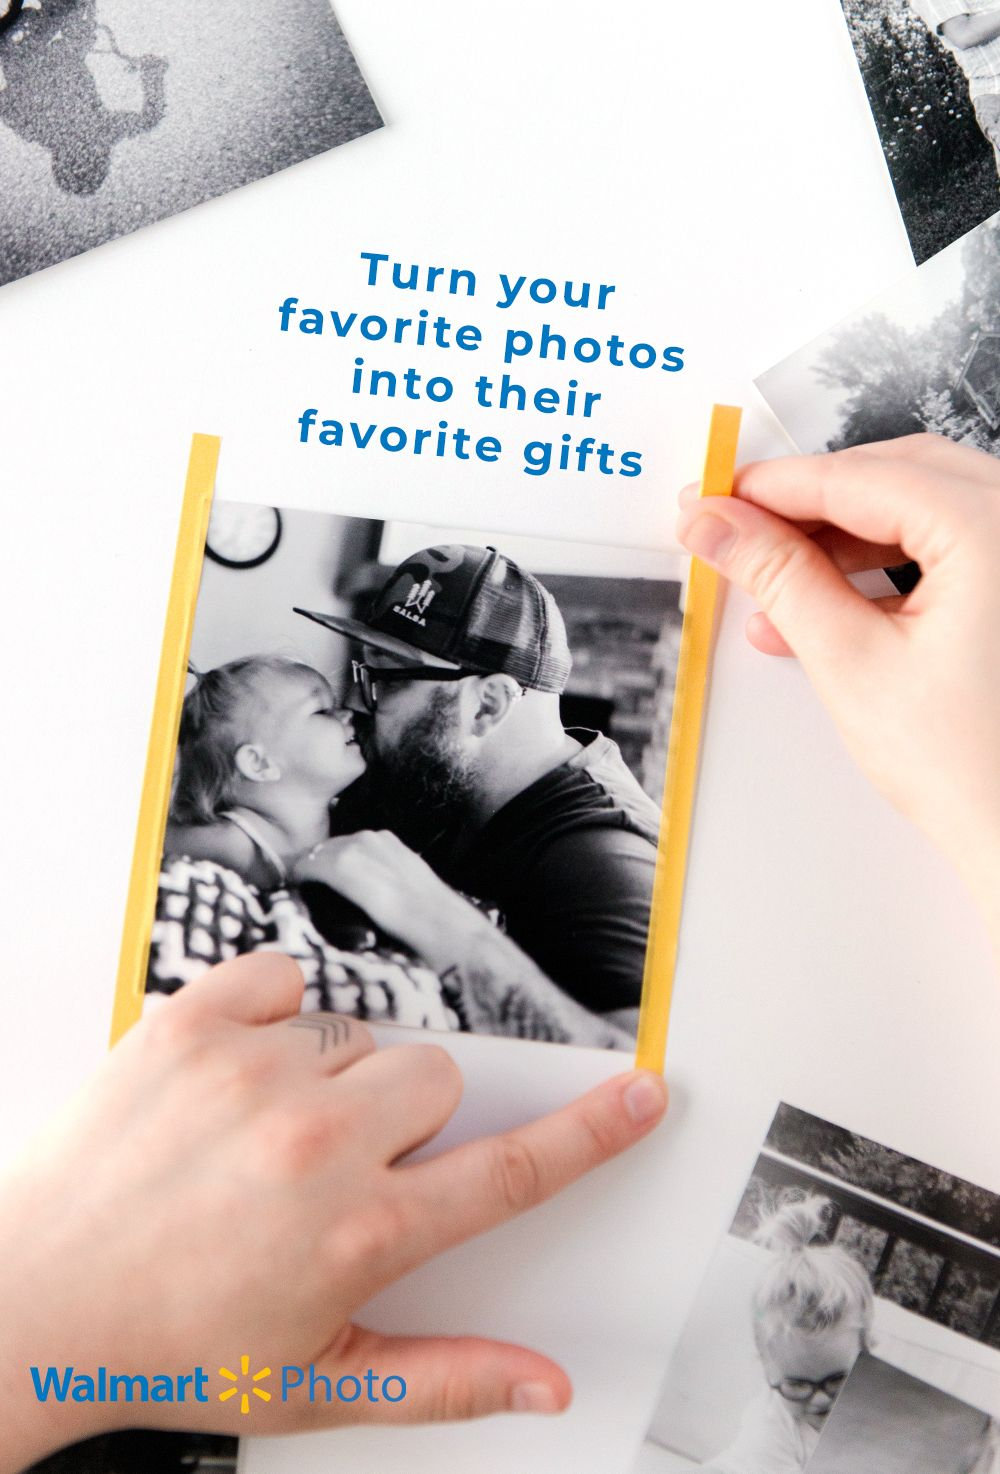 From Phone Photo To Thoughtful Gift Favorite Things Gift Walmart Photos Gifts